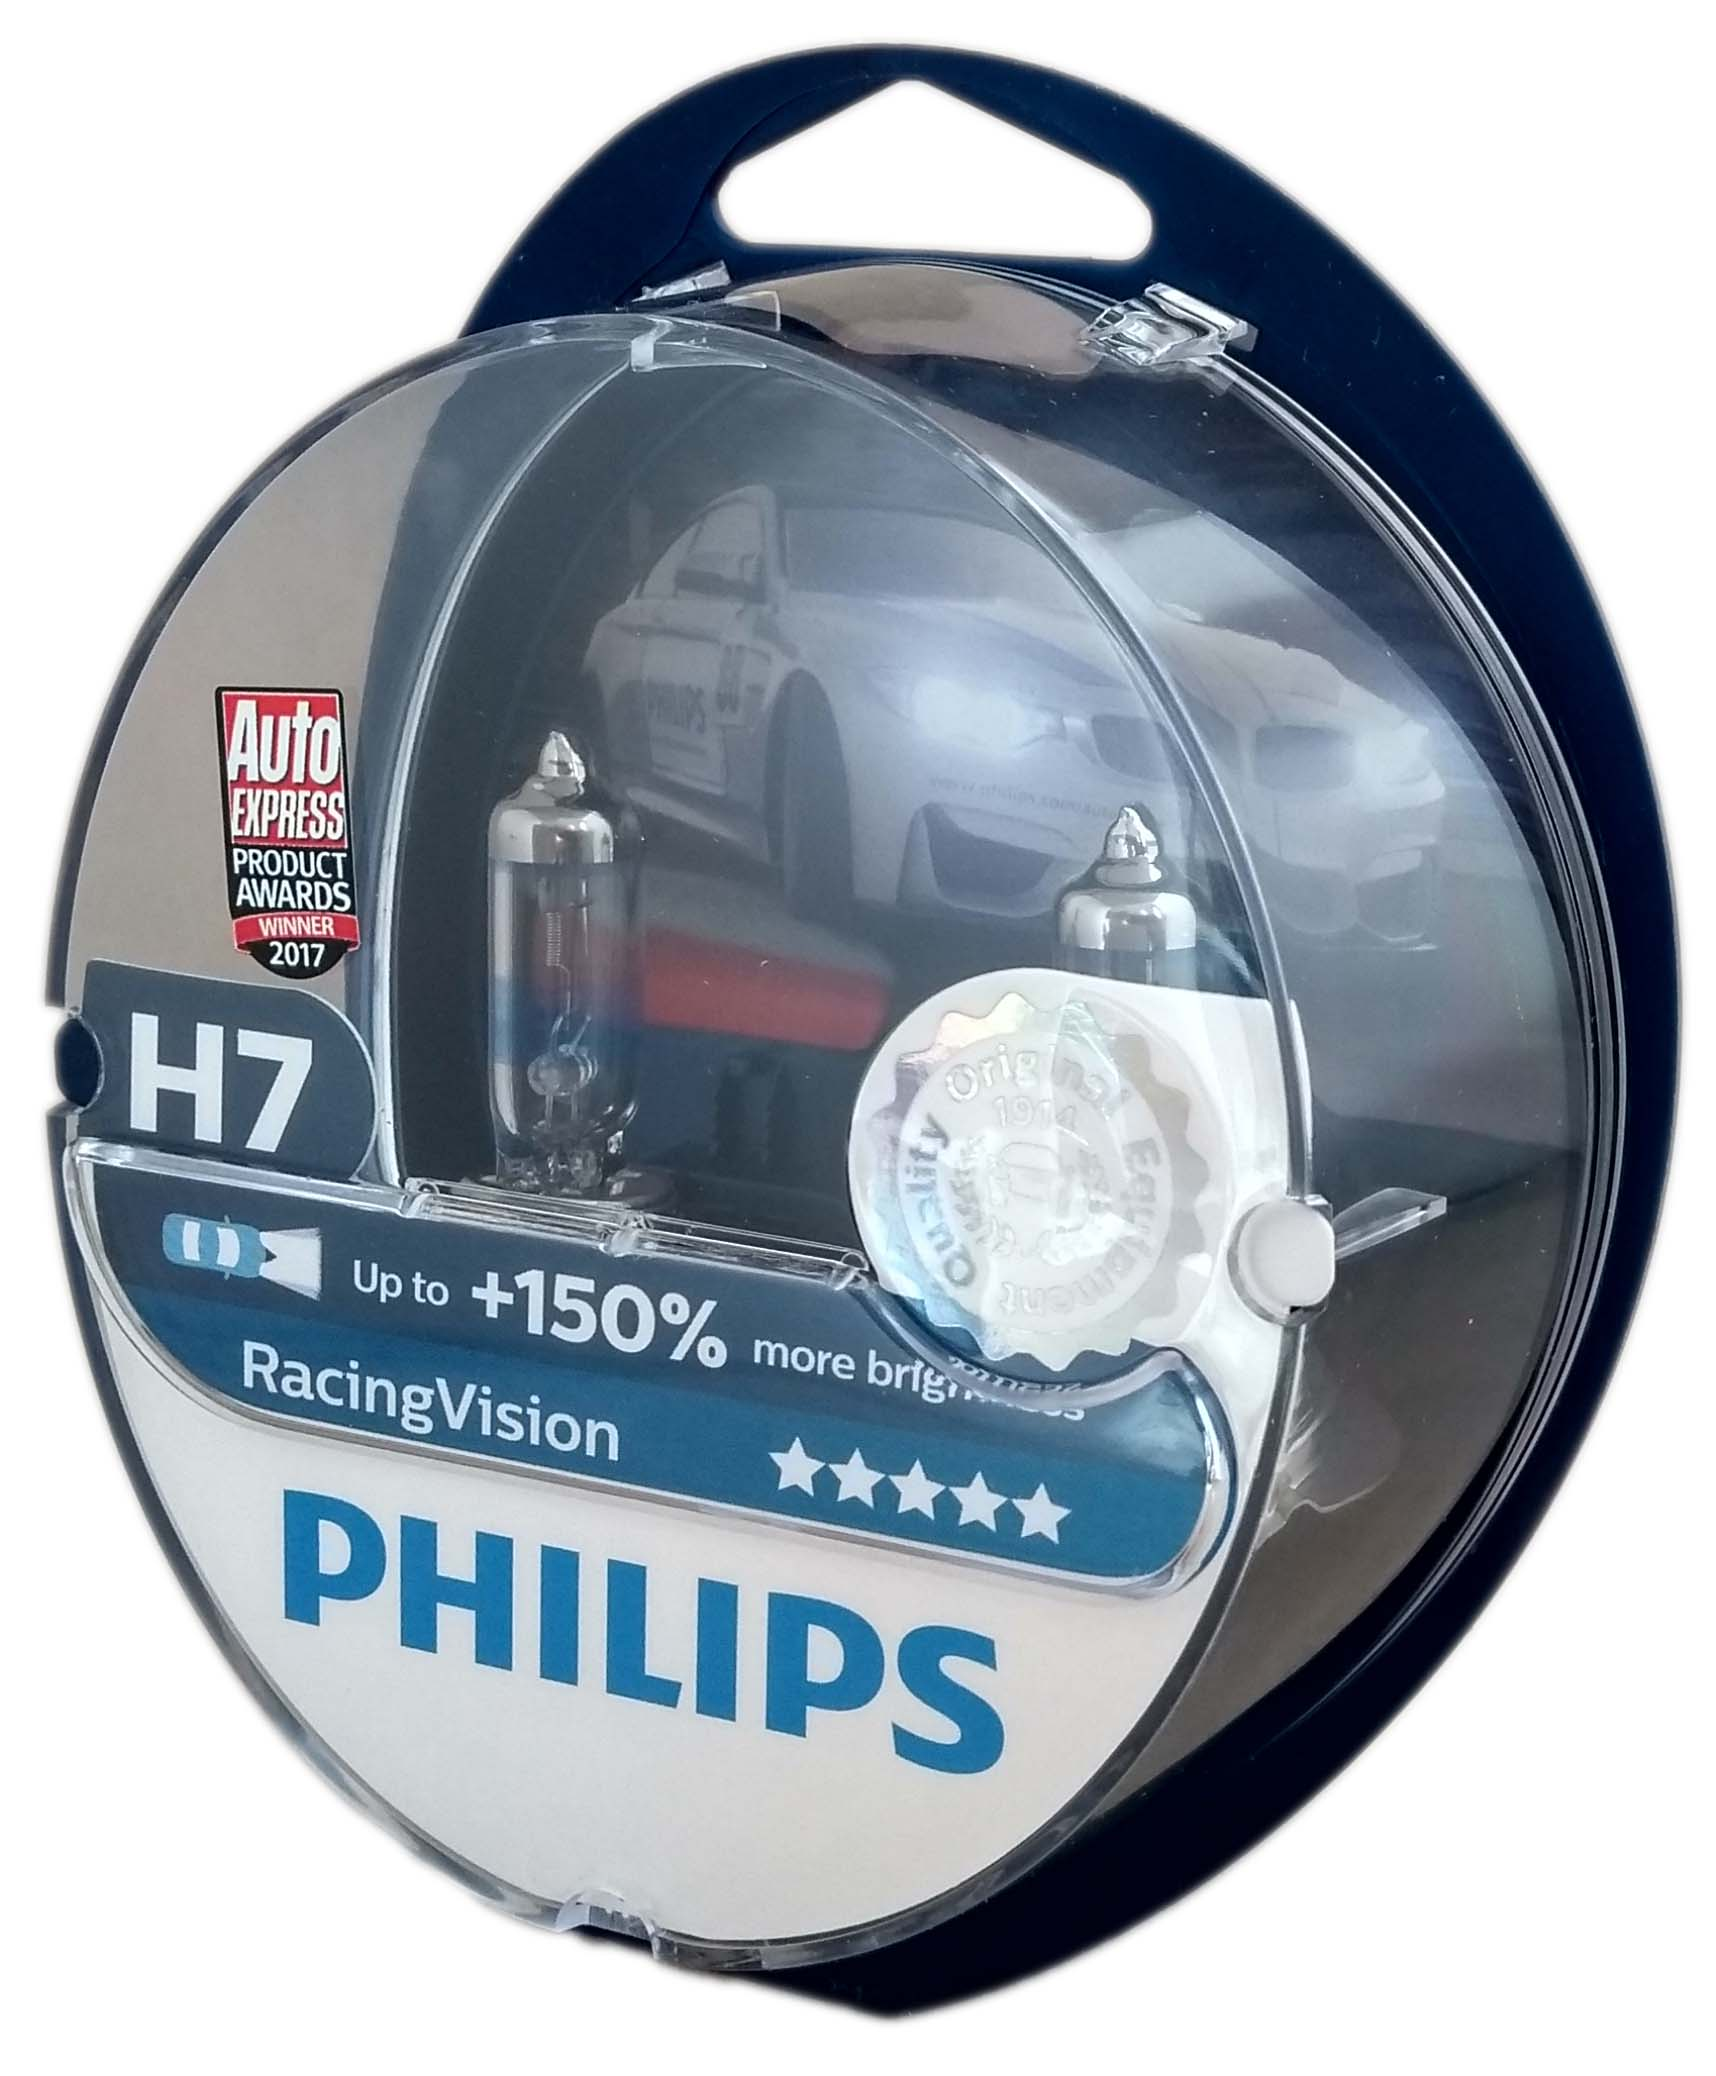 h7 philips racing vision 150 car headlight bulb set with. Black Bedroom Furniture Sets. Home Design Ideas